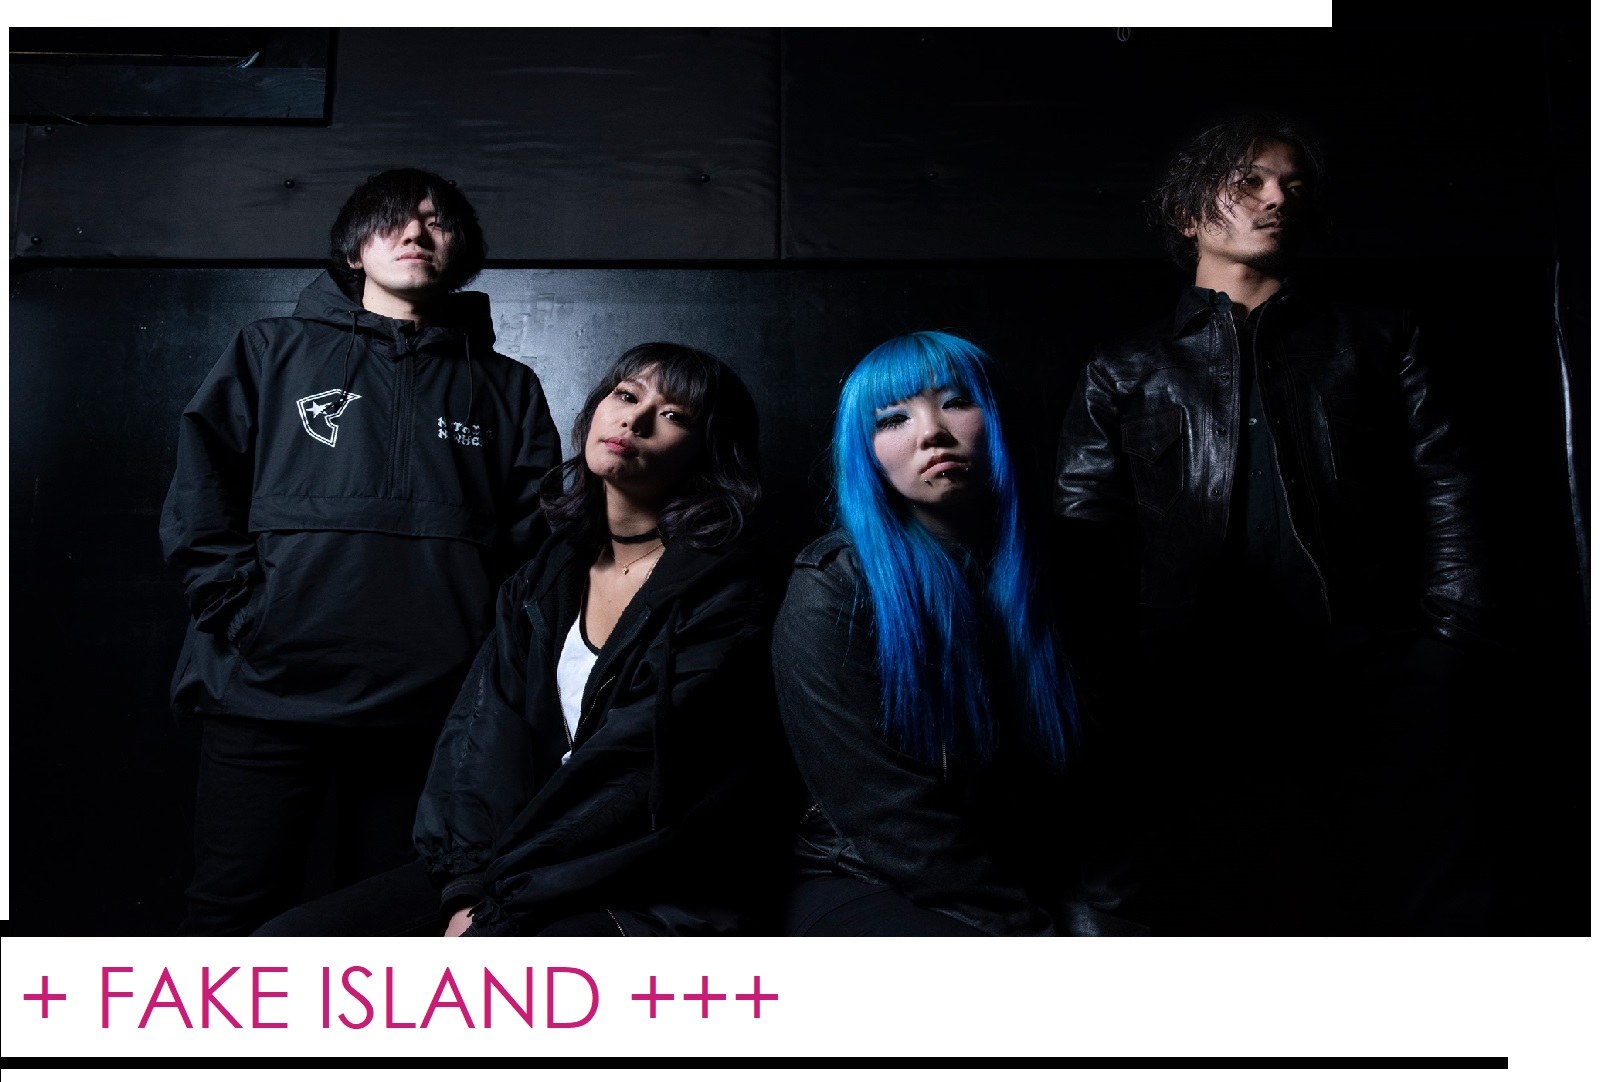 FAKE ISLAND - Heavy sounds from Japan